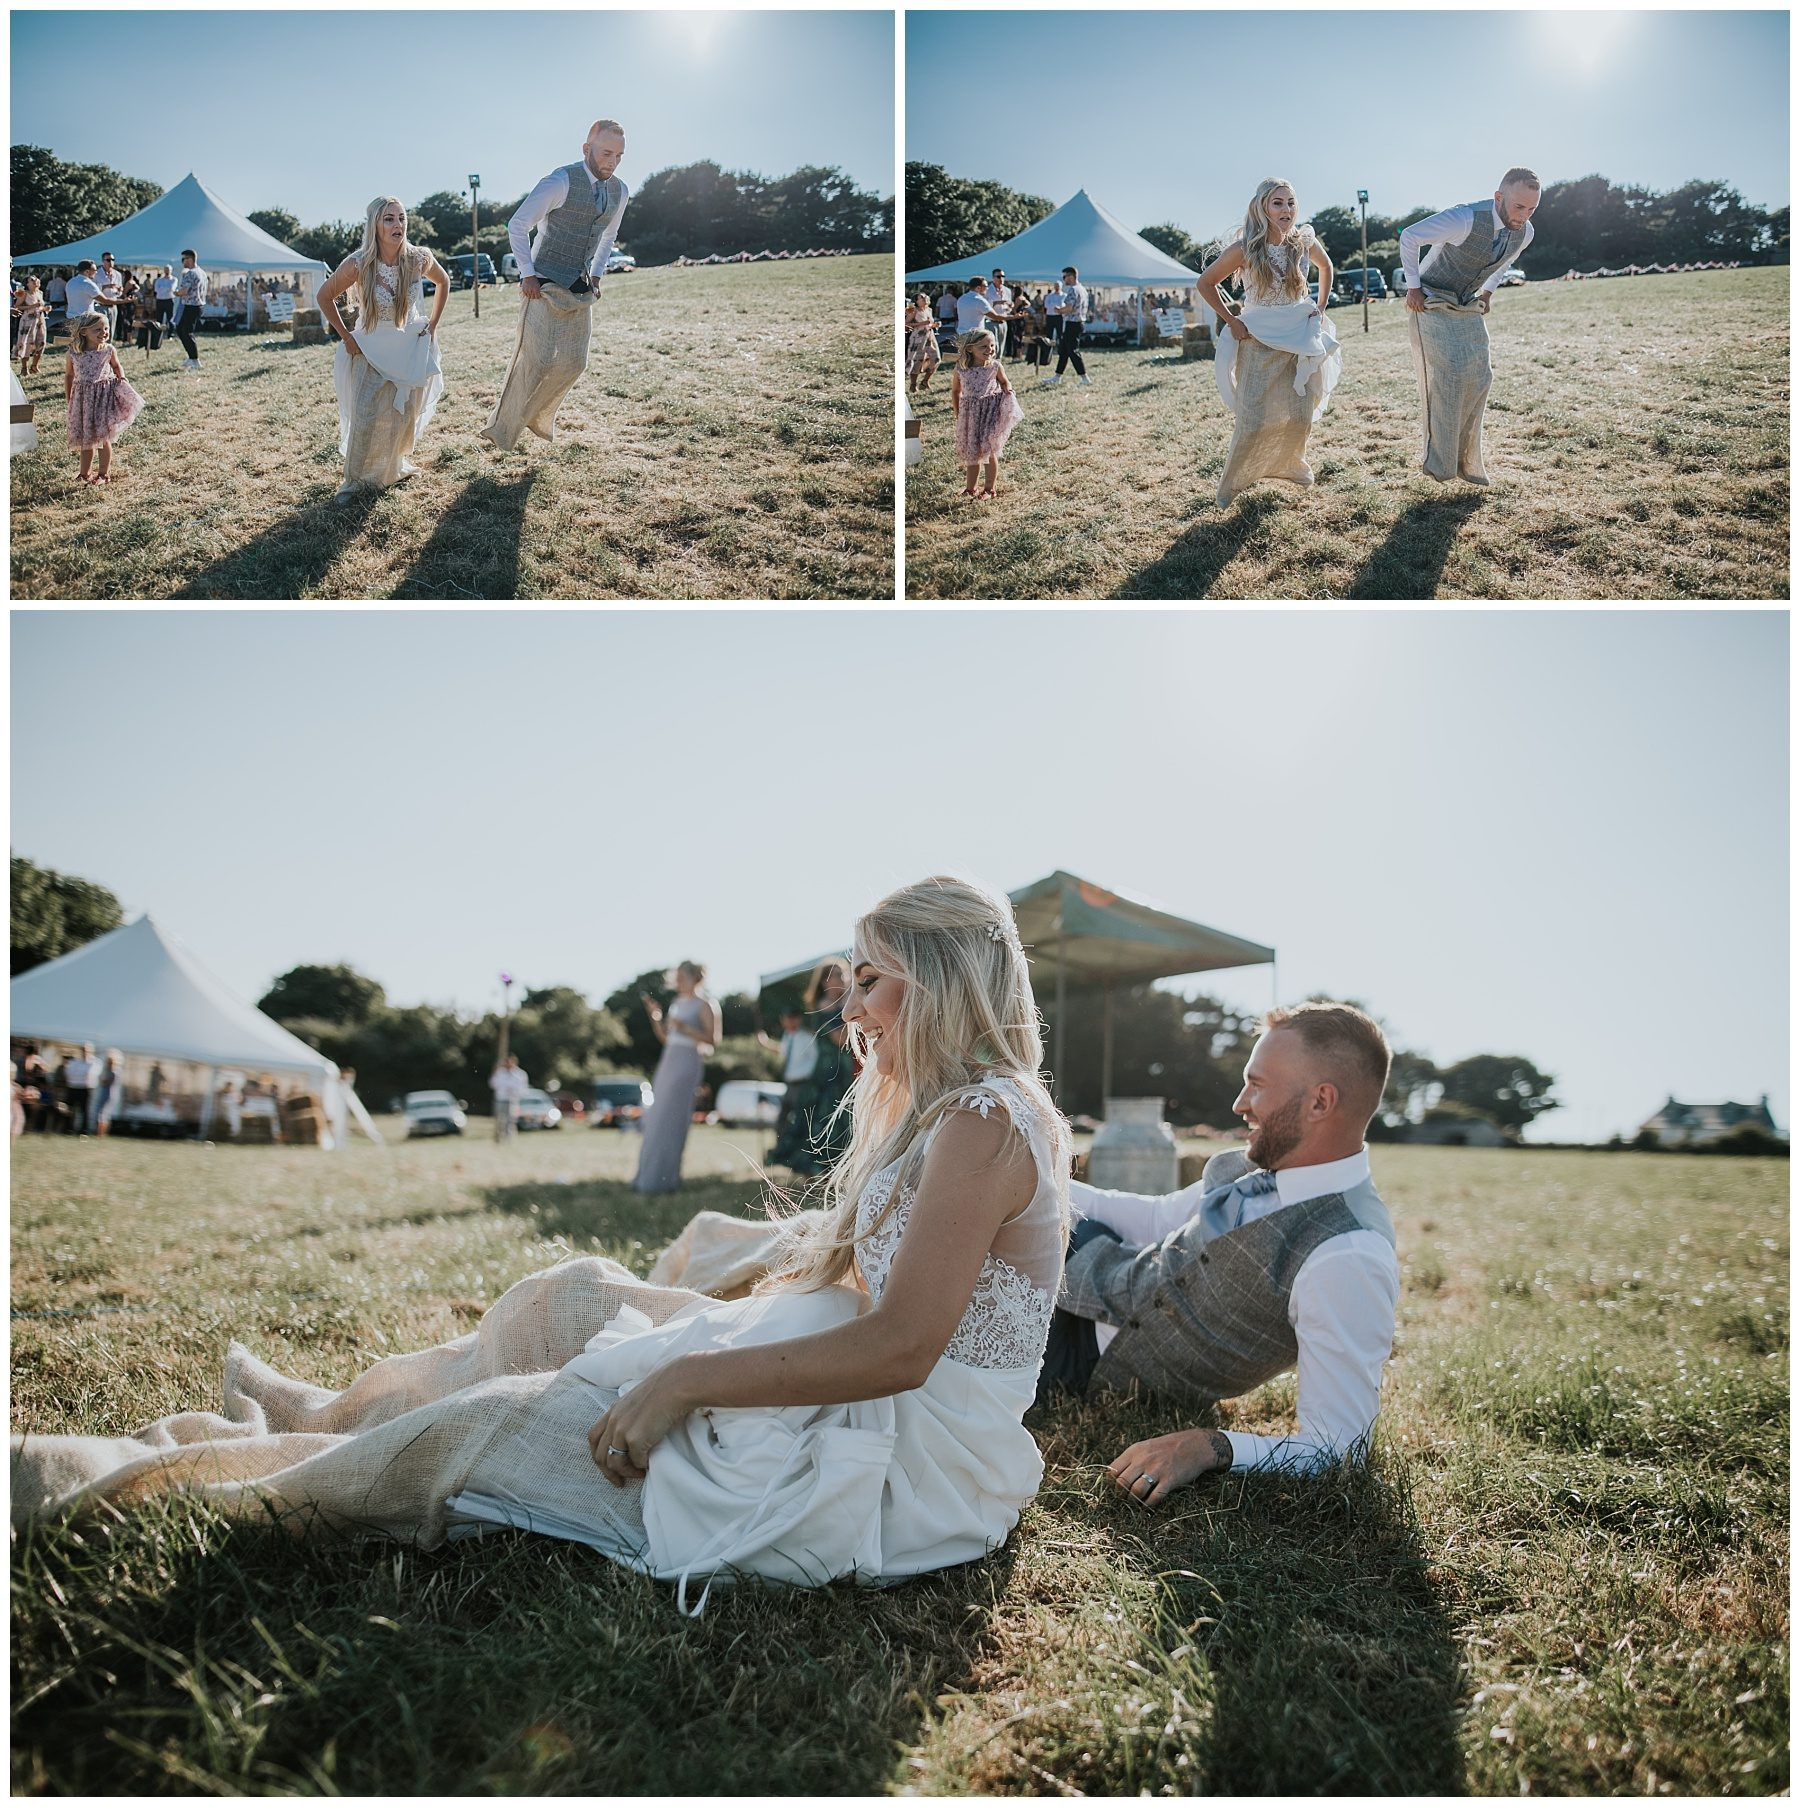 sack race wedding